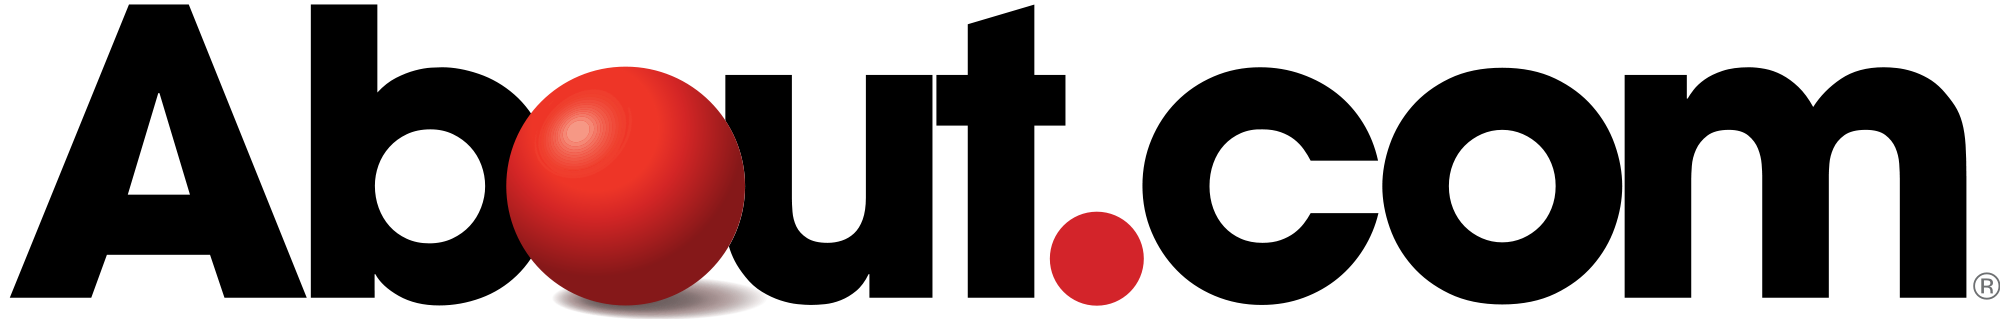 About.com_logo.png